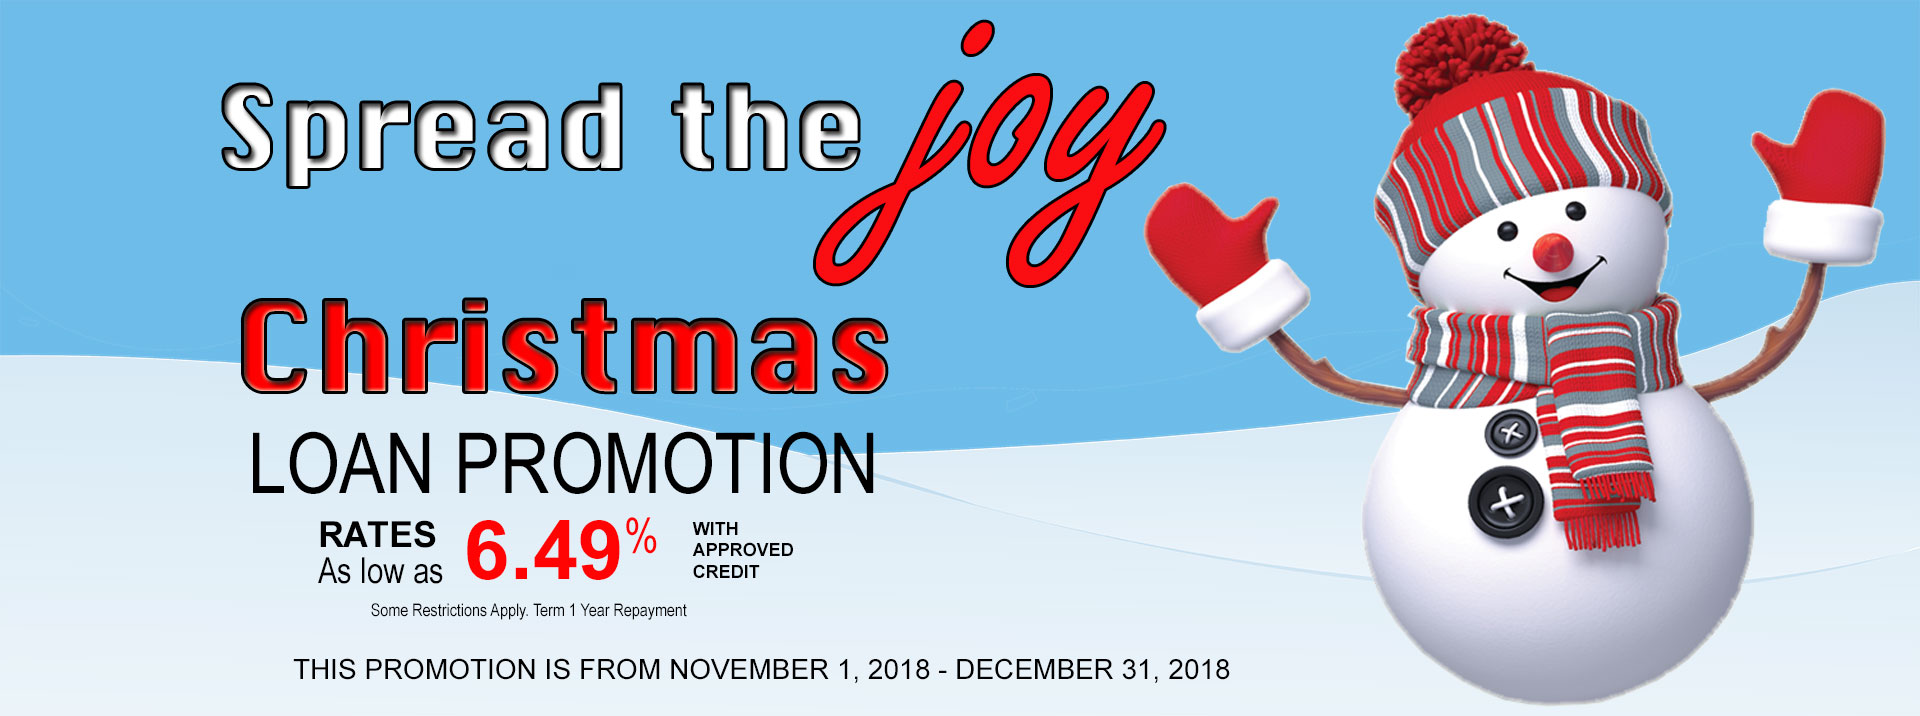 Spread the joy with our Christmas loan promotion. Rates as low as 6.49 percent